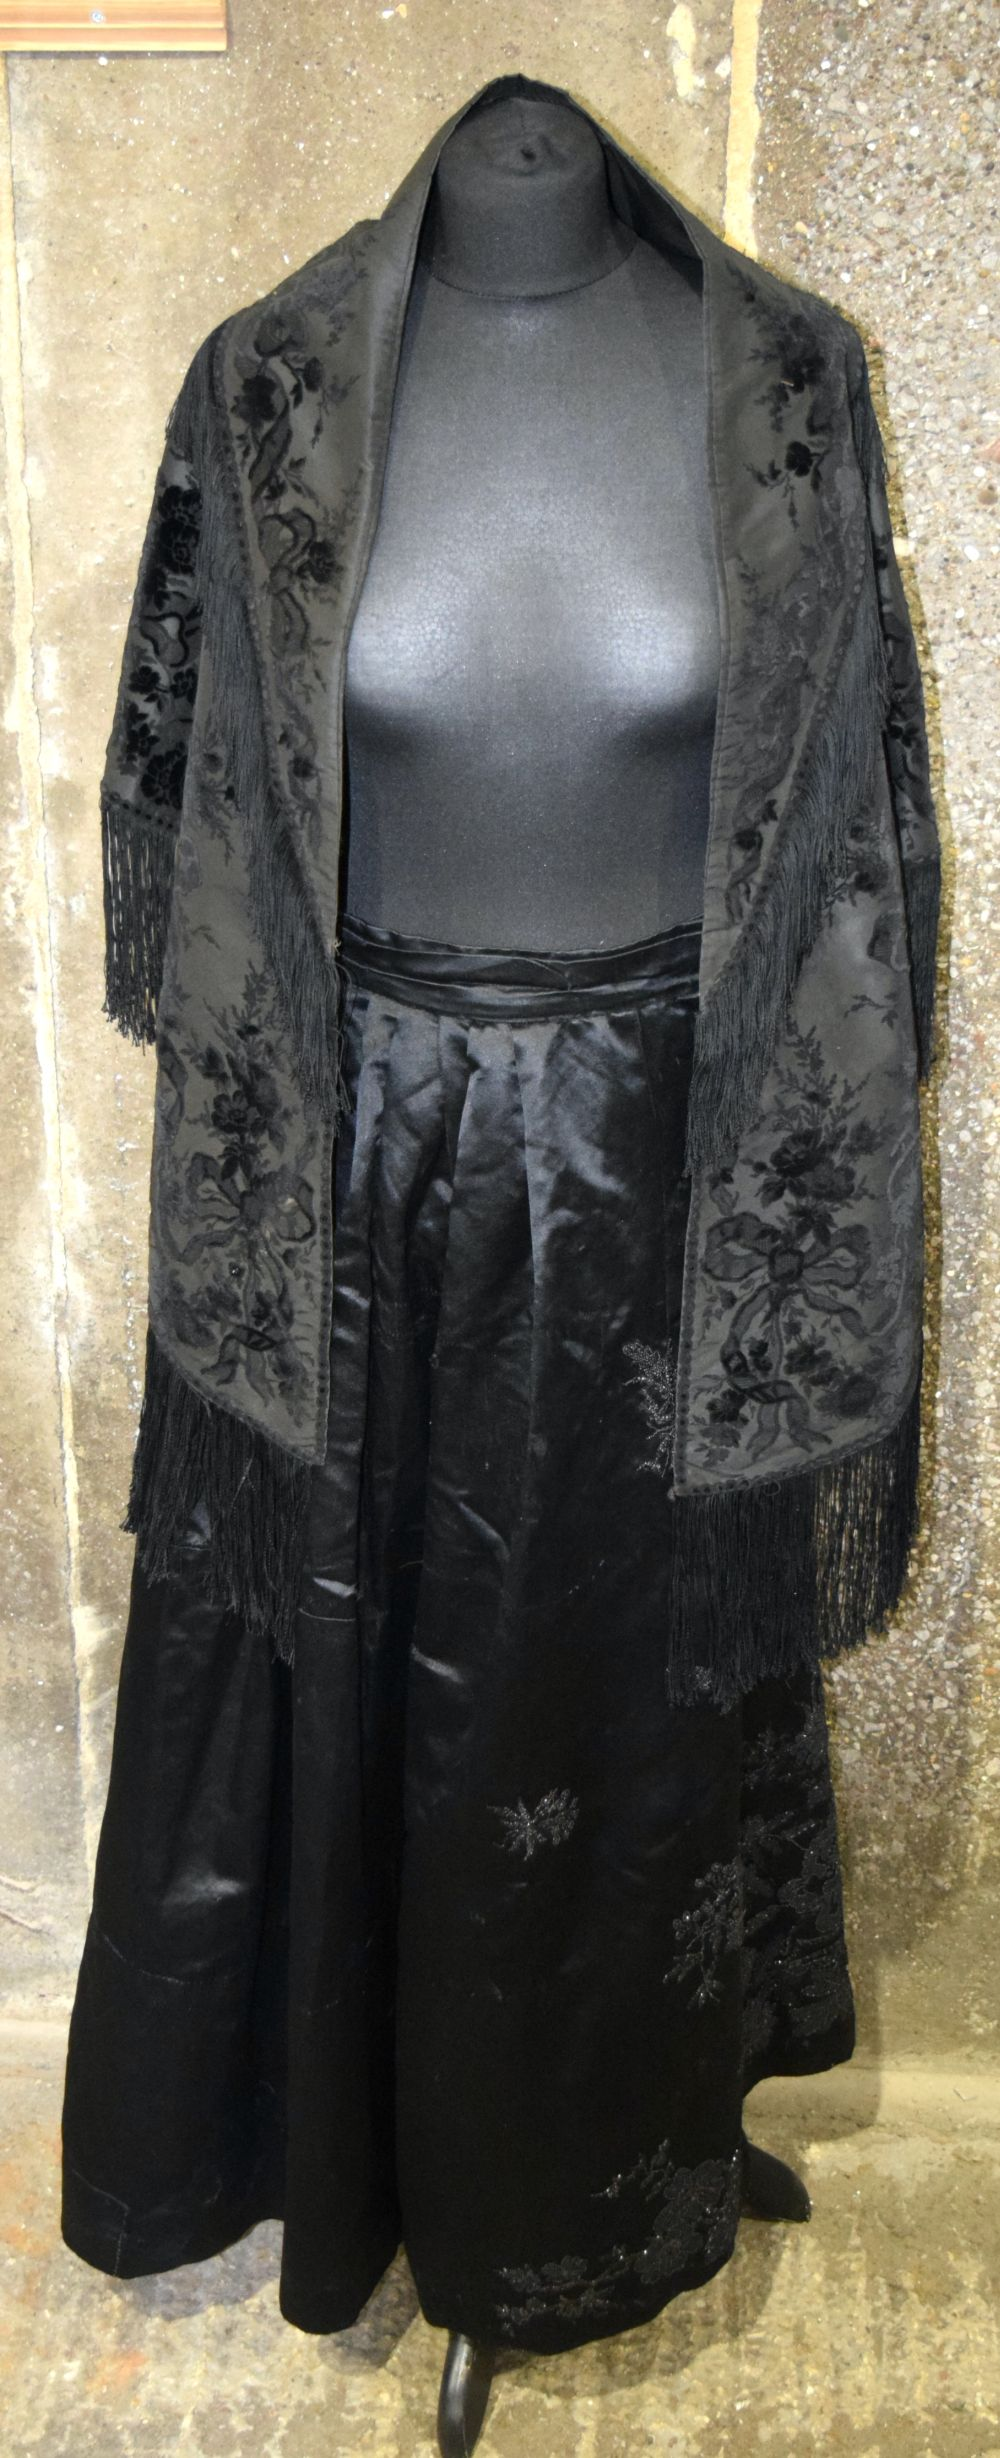 A Vintage Heavy satin skirt together with a shawl.